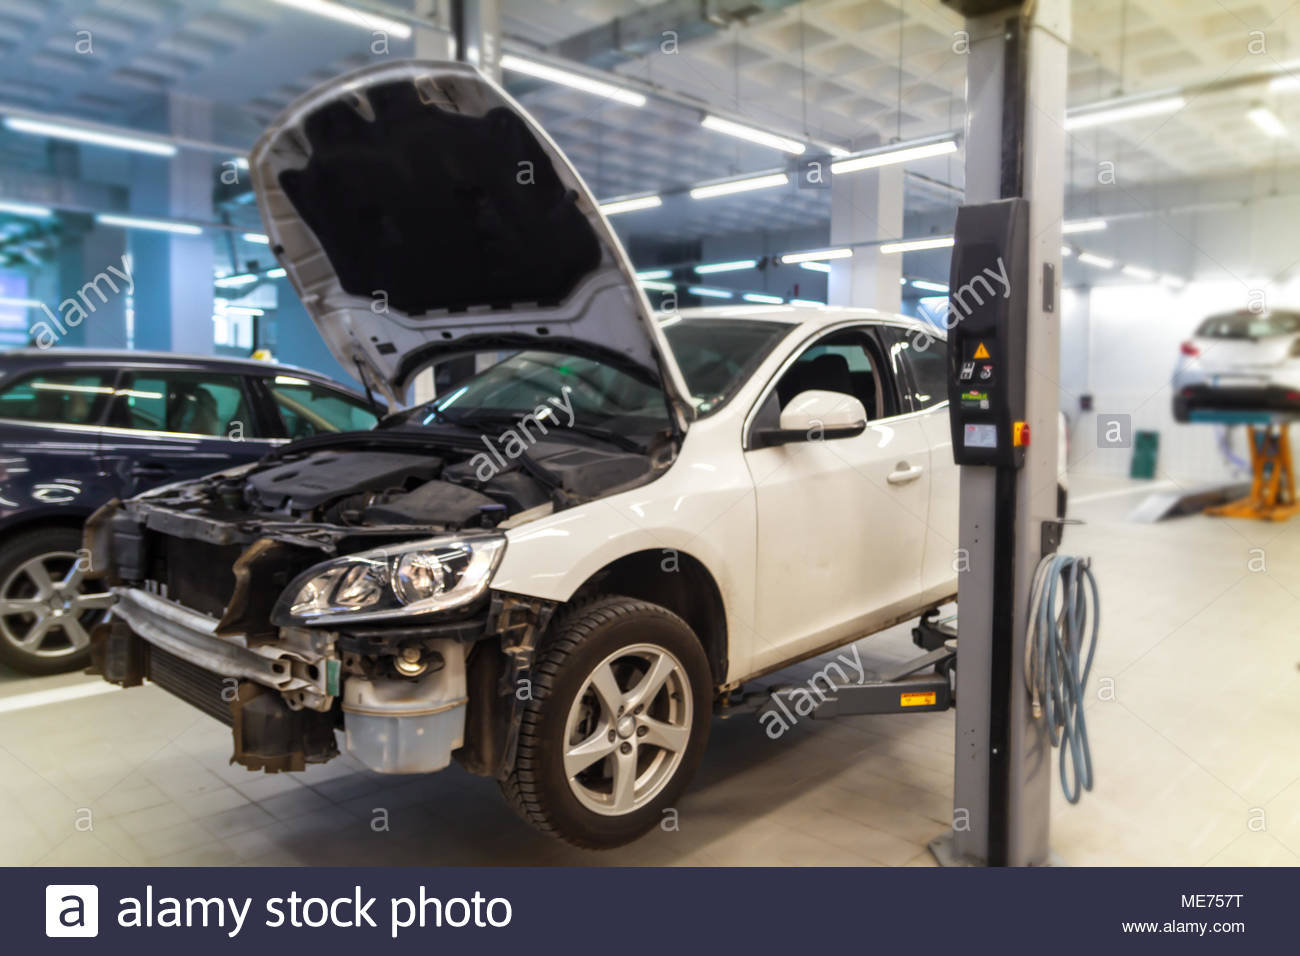 Car Garage And Accident Vehicle Detail Stock Photo Alamy - Show car garage